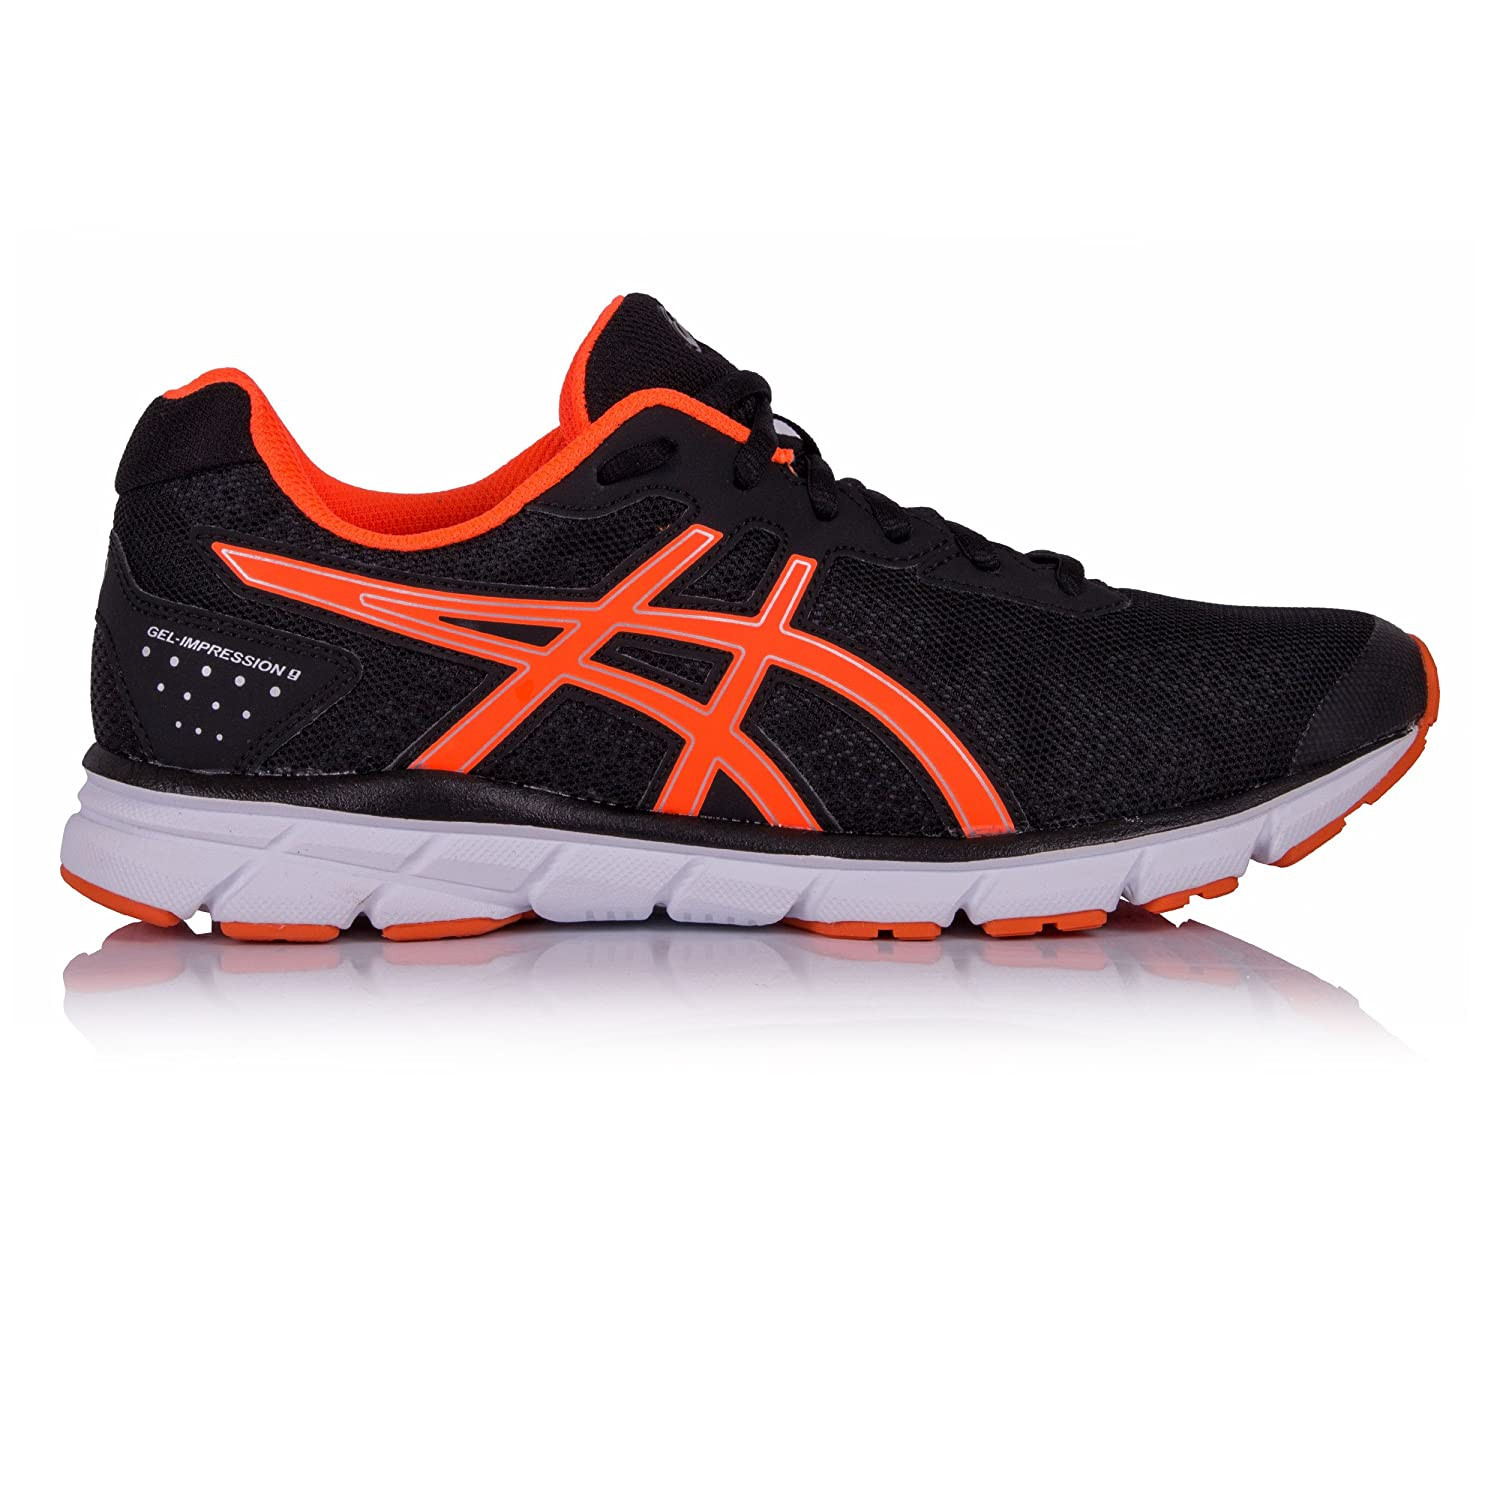 Chaussures Asics Gel impression